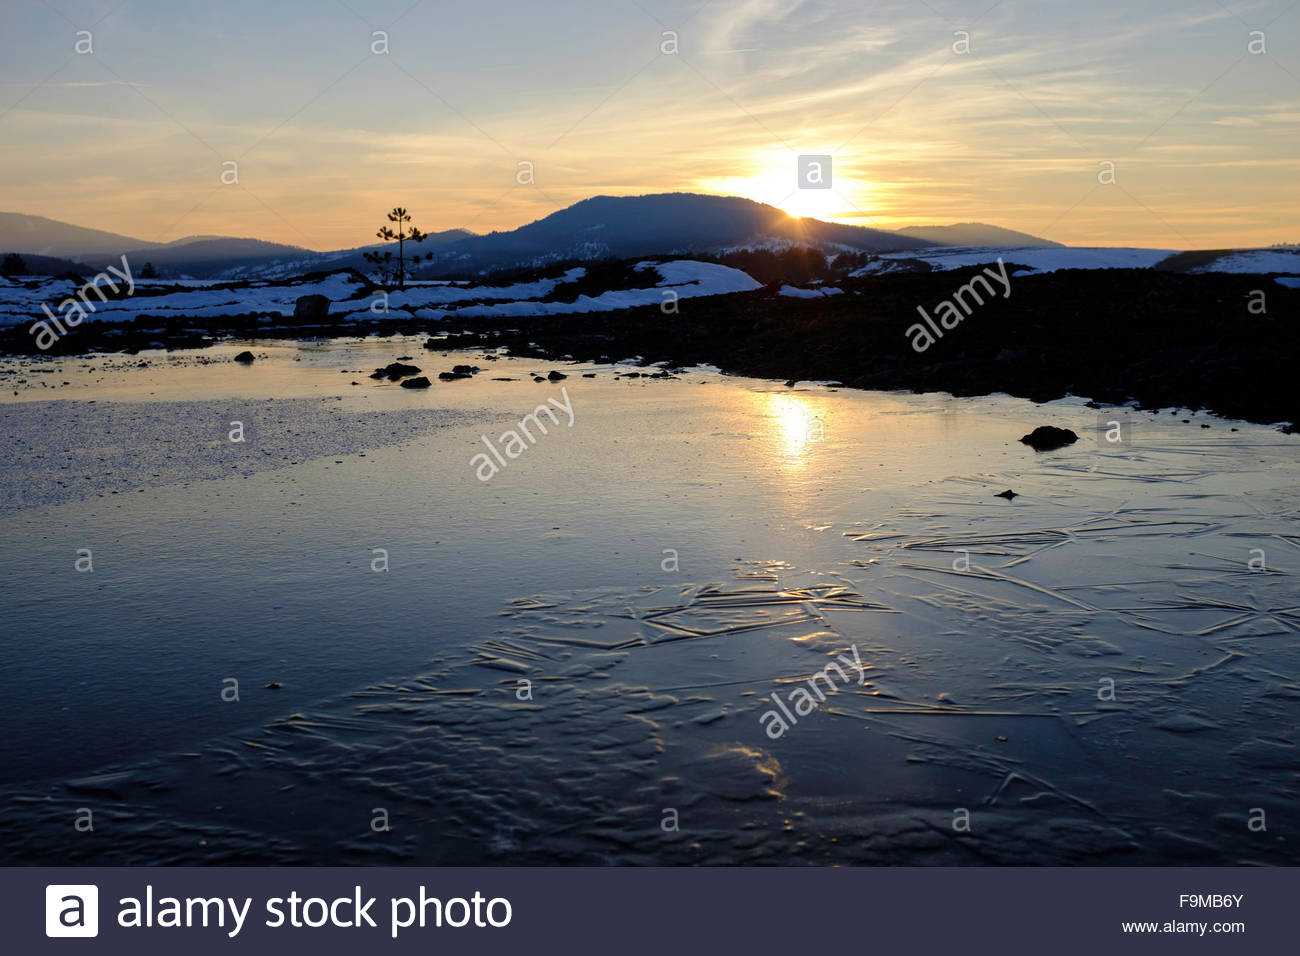 Sunset in the Zlatibor mountains, Serbia - Stock Image